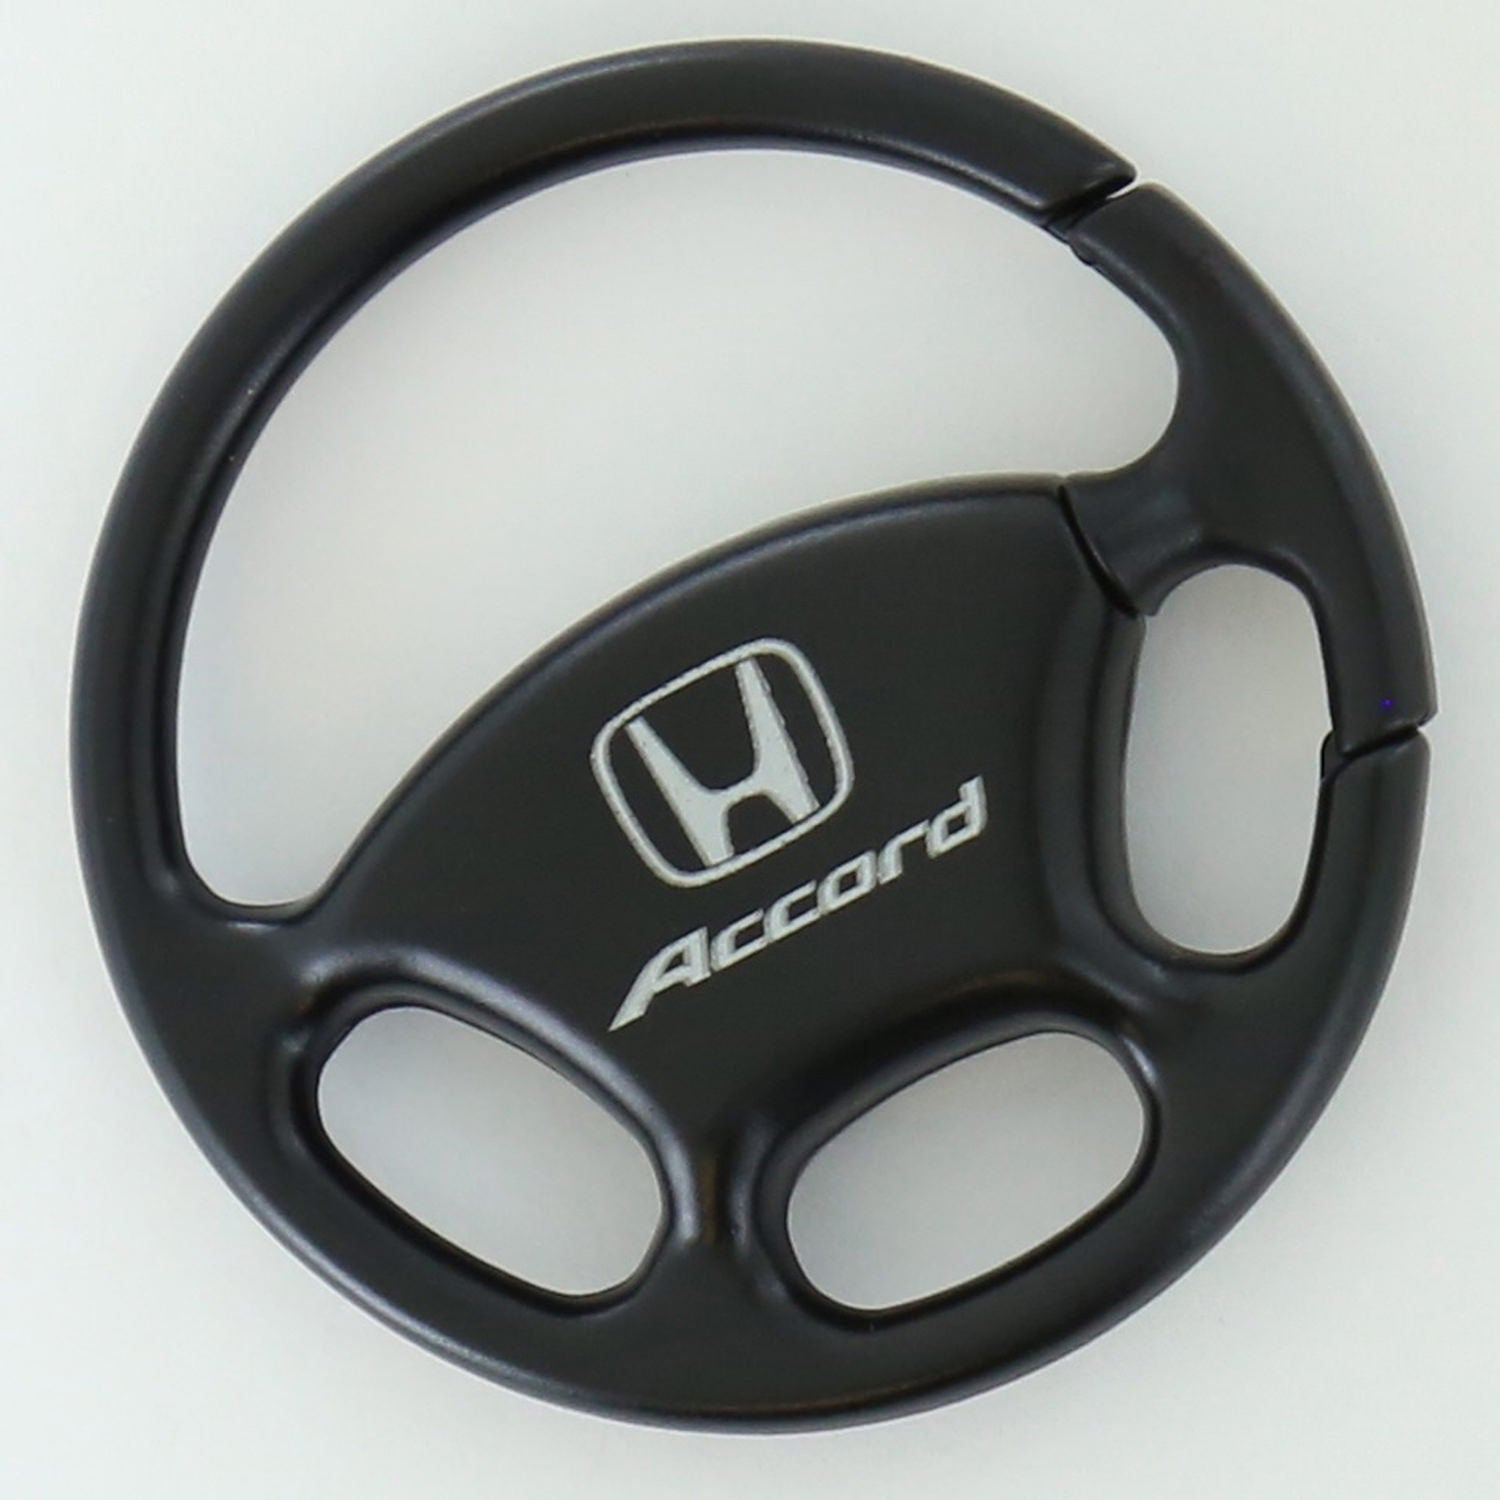 Honda Accord Key Chain